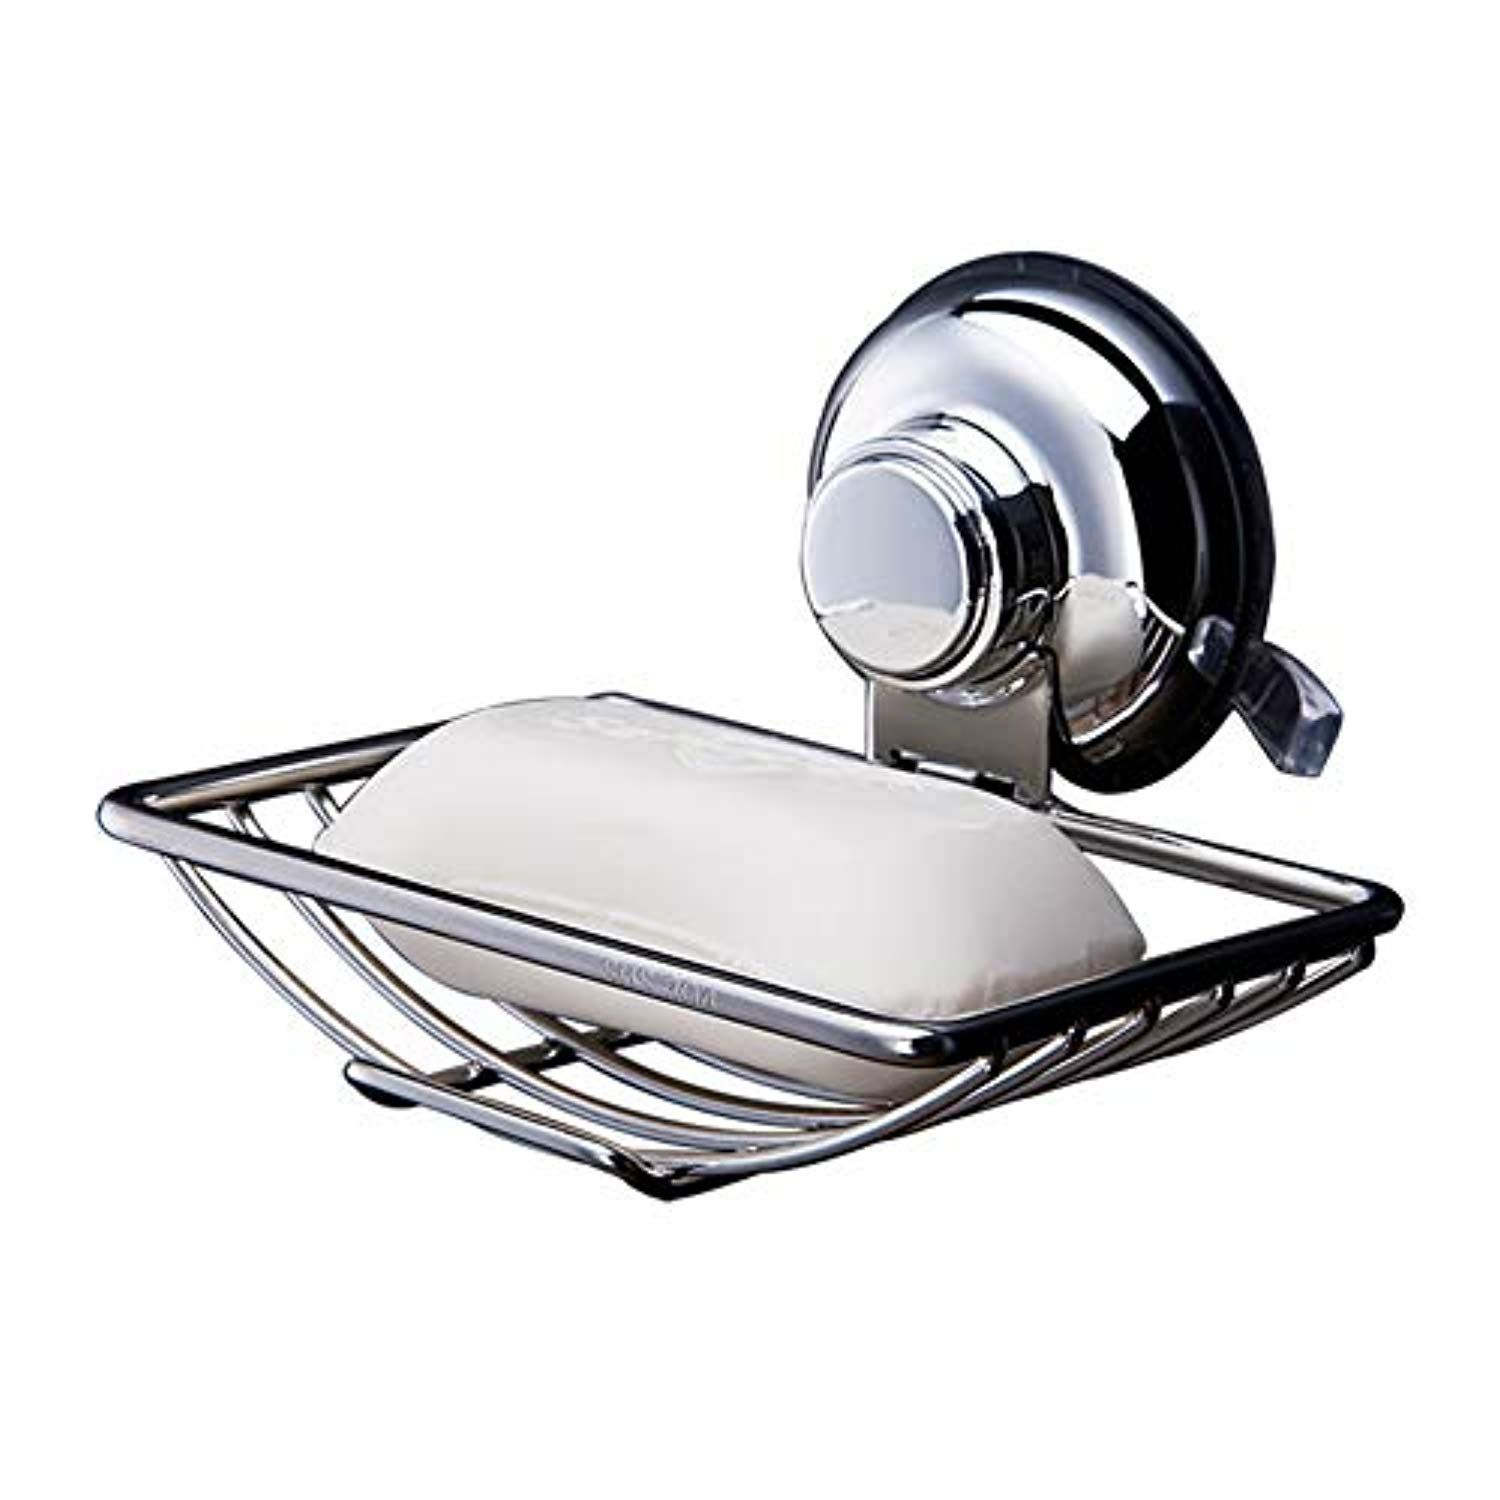 Joyeveri Suction Cup Shower Soap Dish Stainless Steel Soap Holder Wall Mounted Soap Rack Suction Soap Tray For Bathroom And K Bathroom Tray Soap Tray Dish Soap